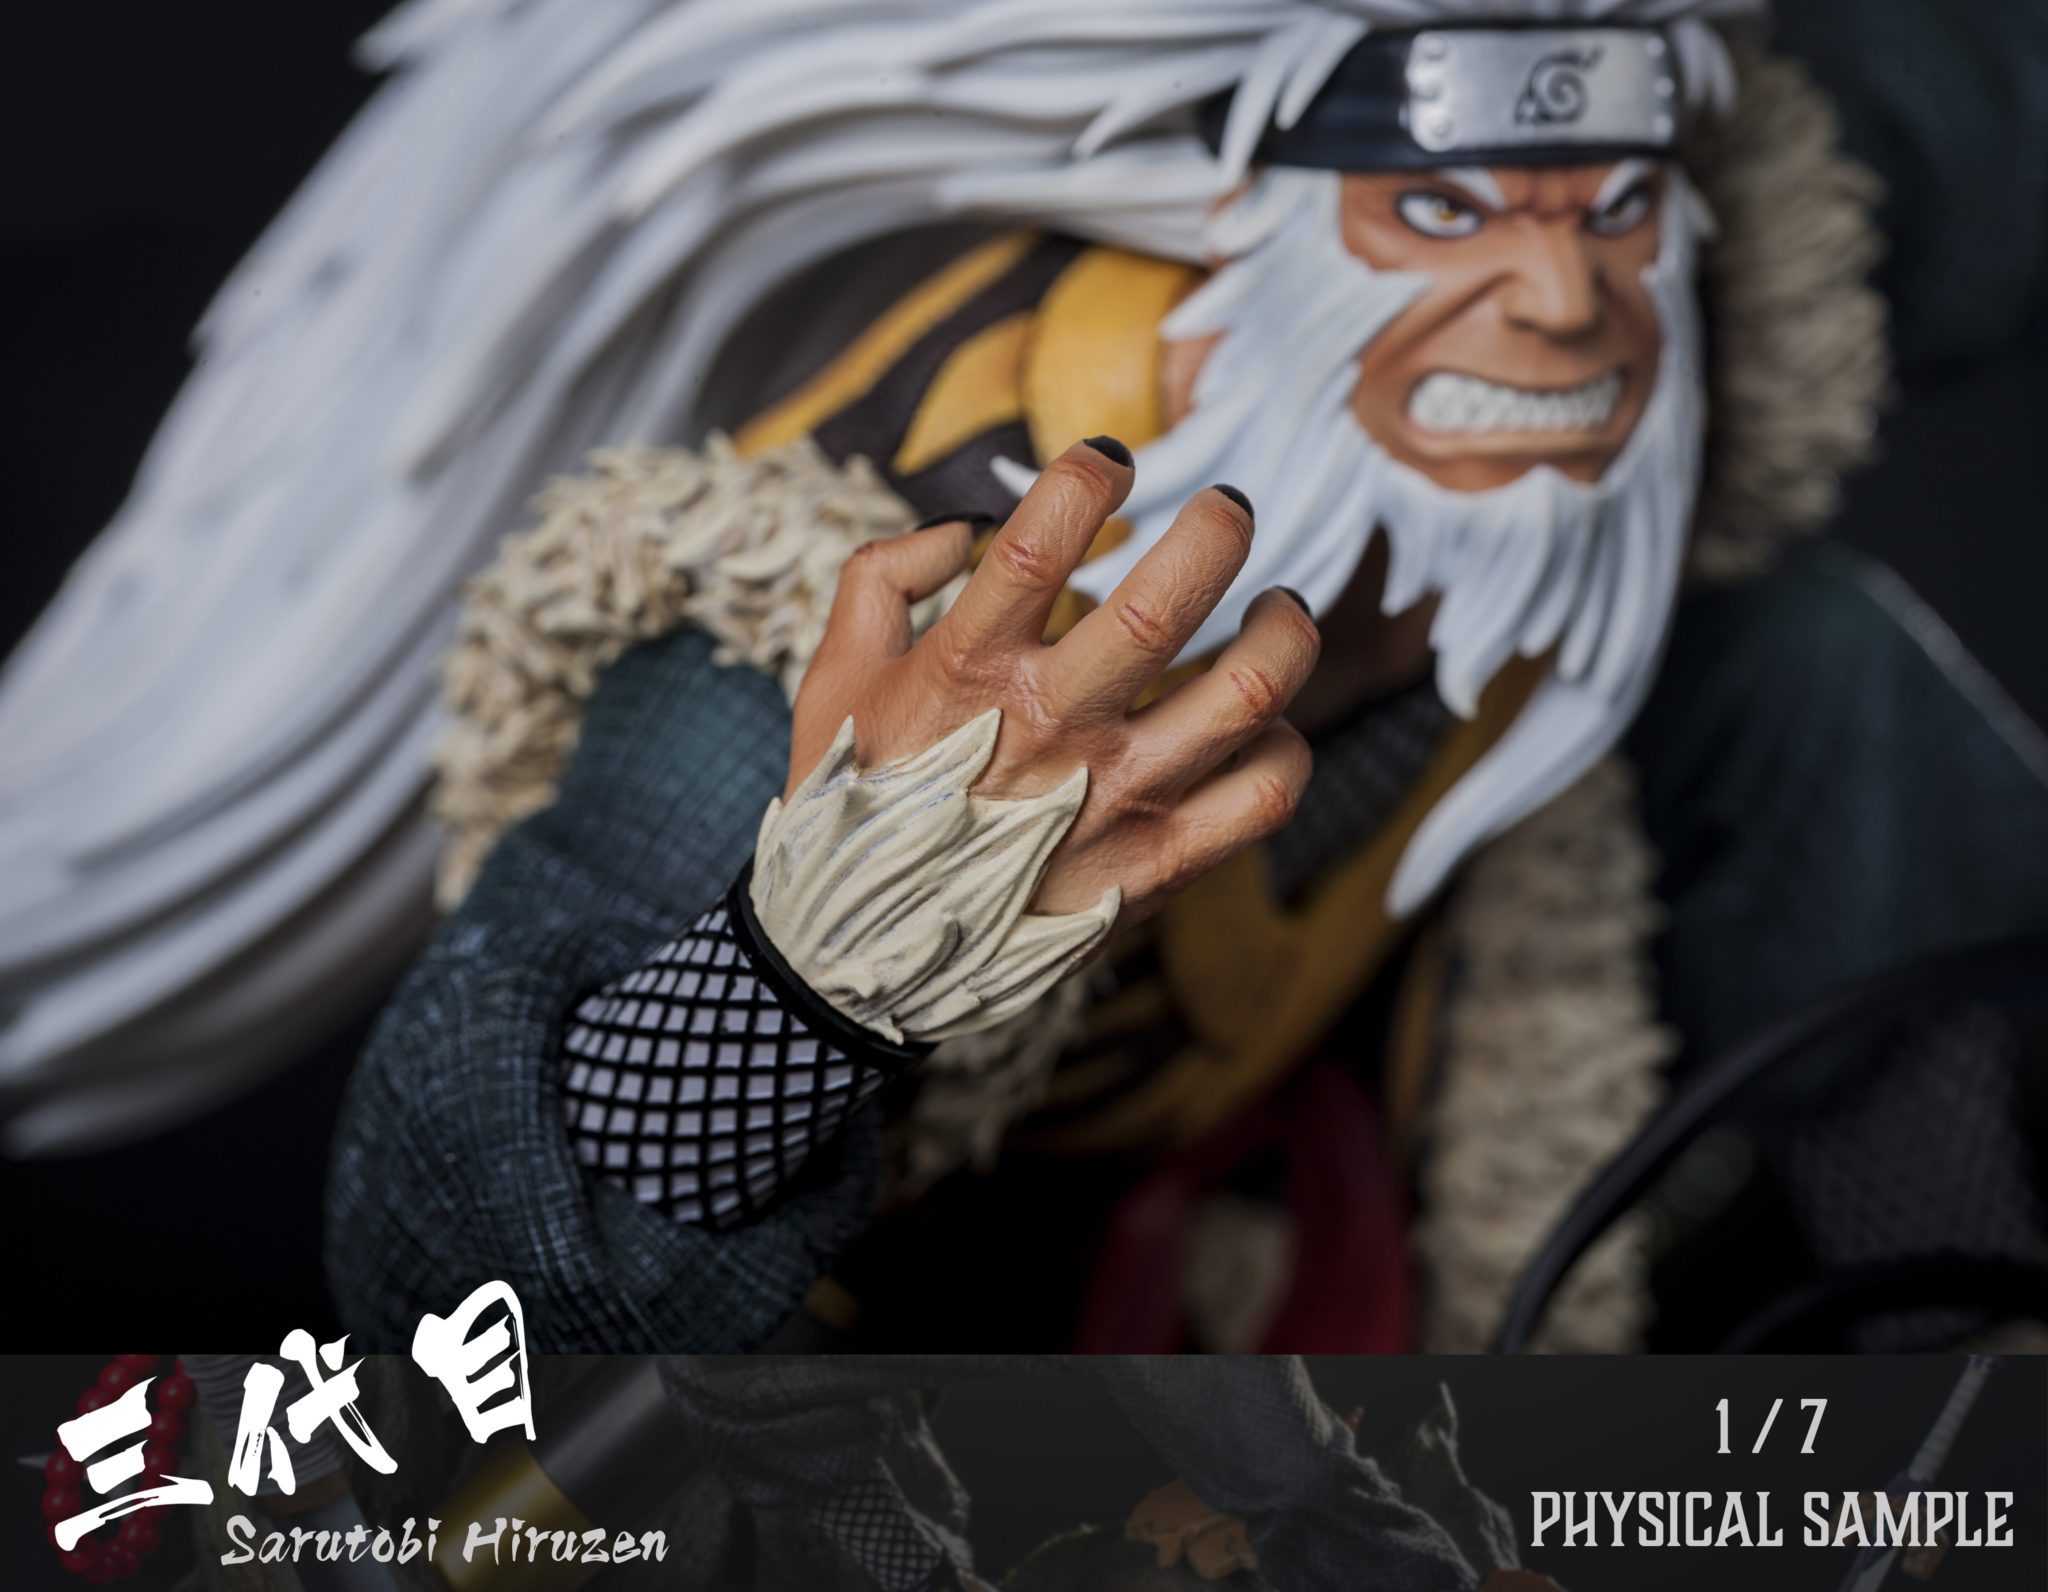 Clouds Studio Hiruzen Sarutobi 1/7 Scale Statue Moneky King Enma Closeup 2